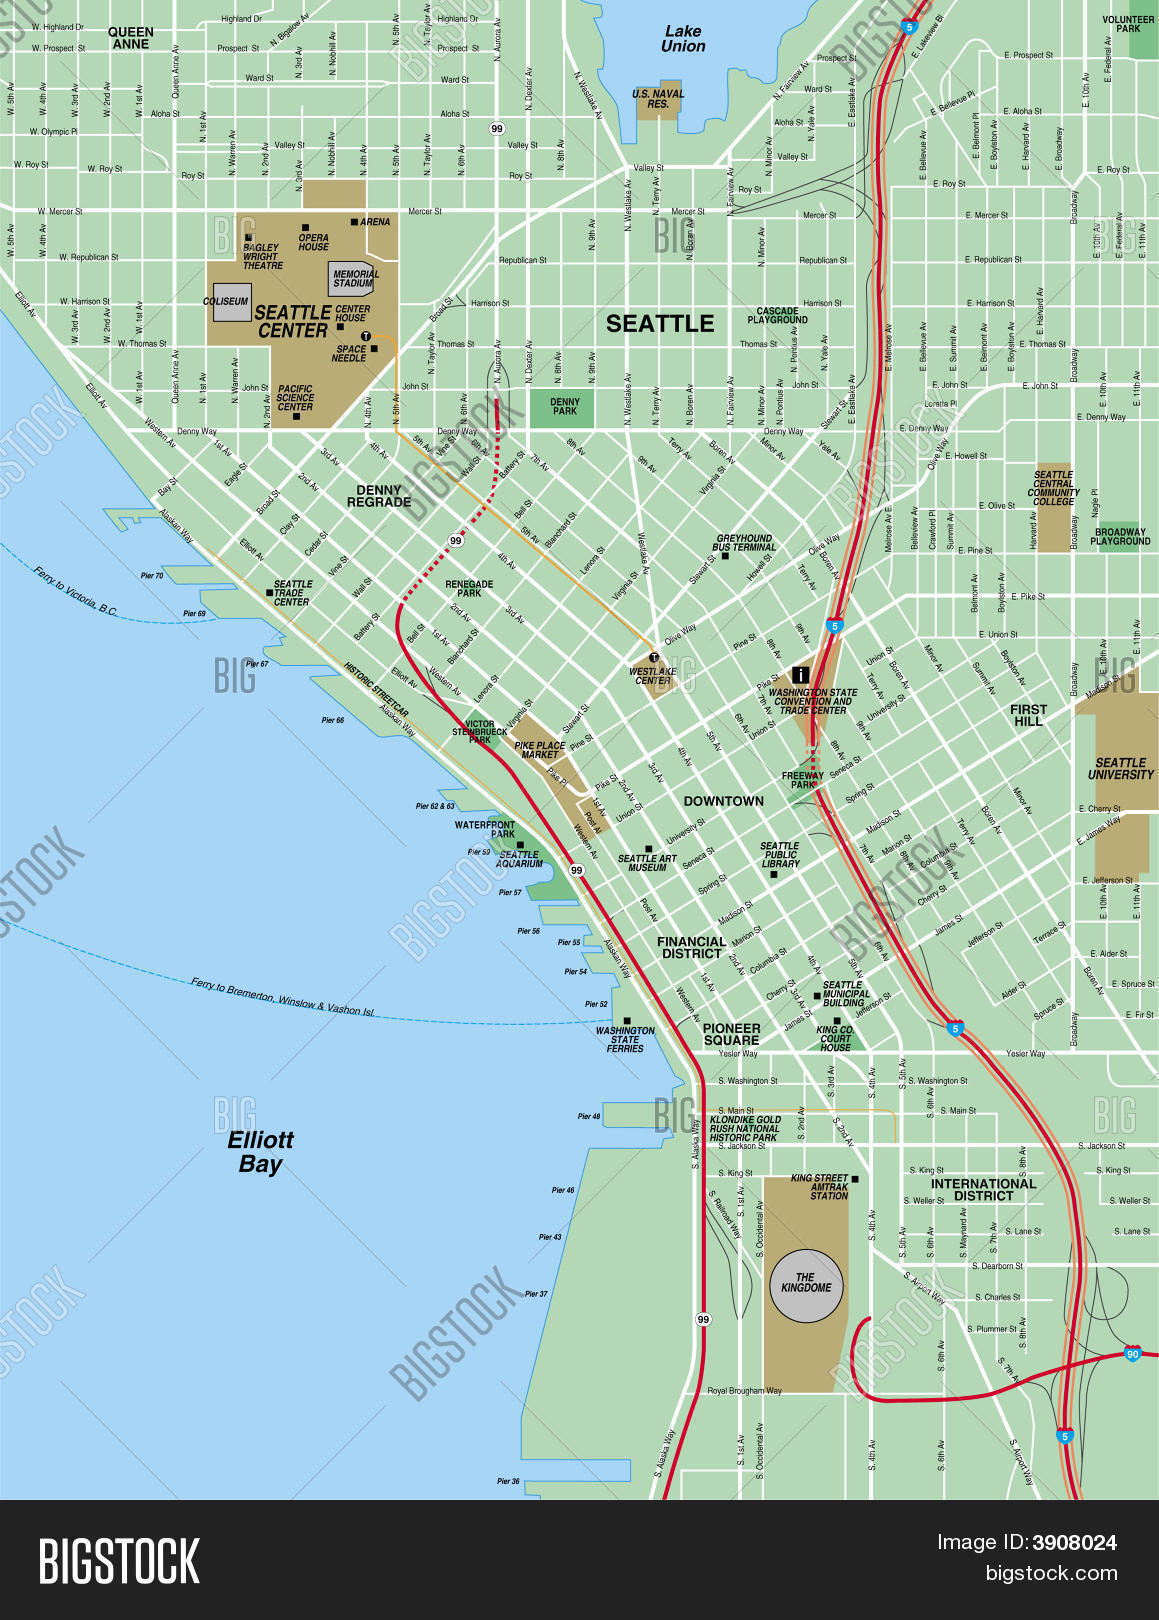 Downtown Seattle Map Image & Photo (Free Trial) | Bigstock on